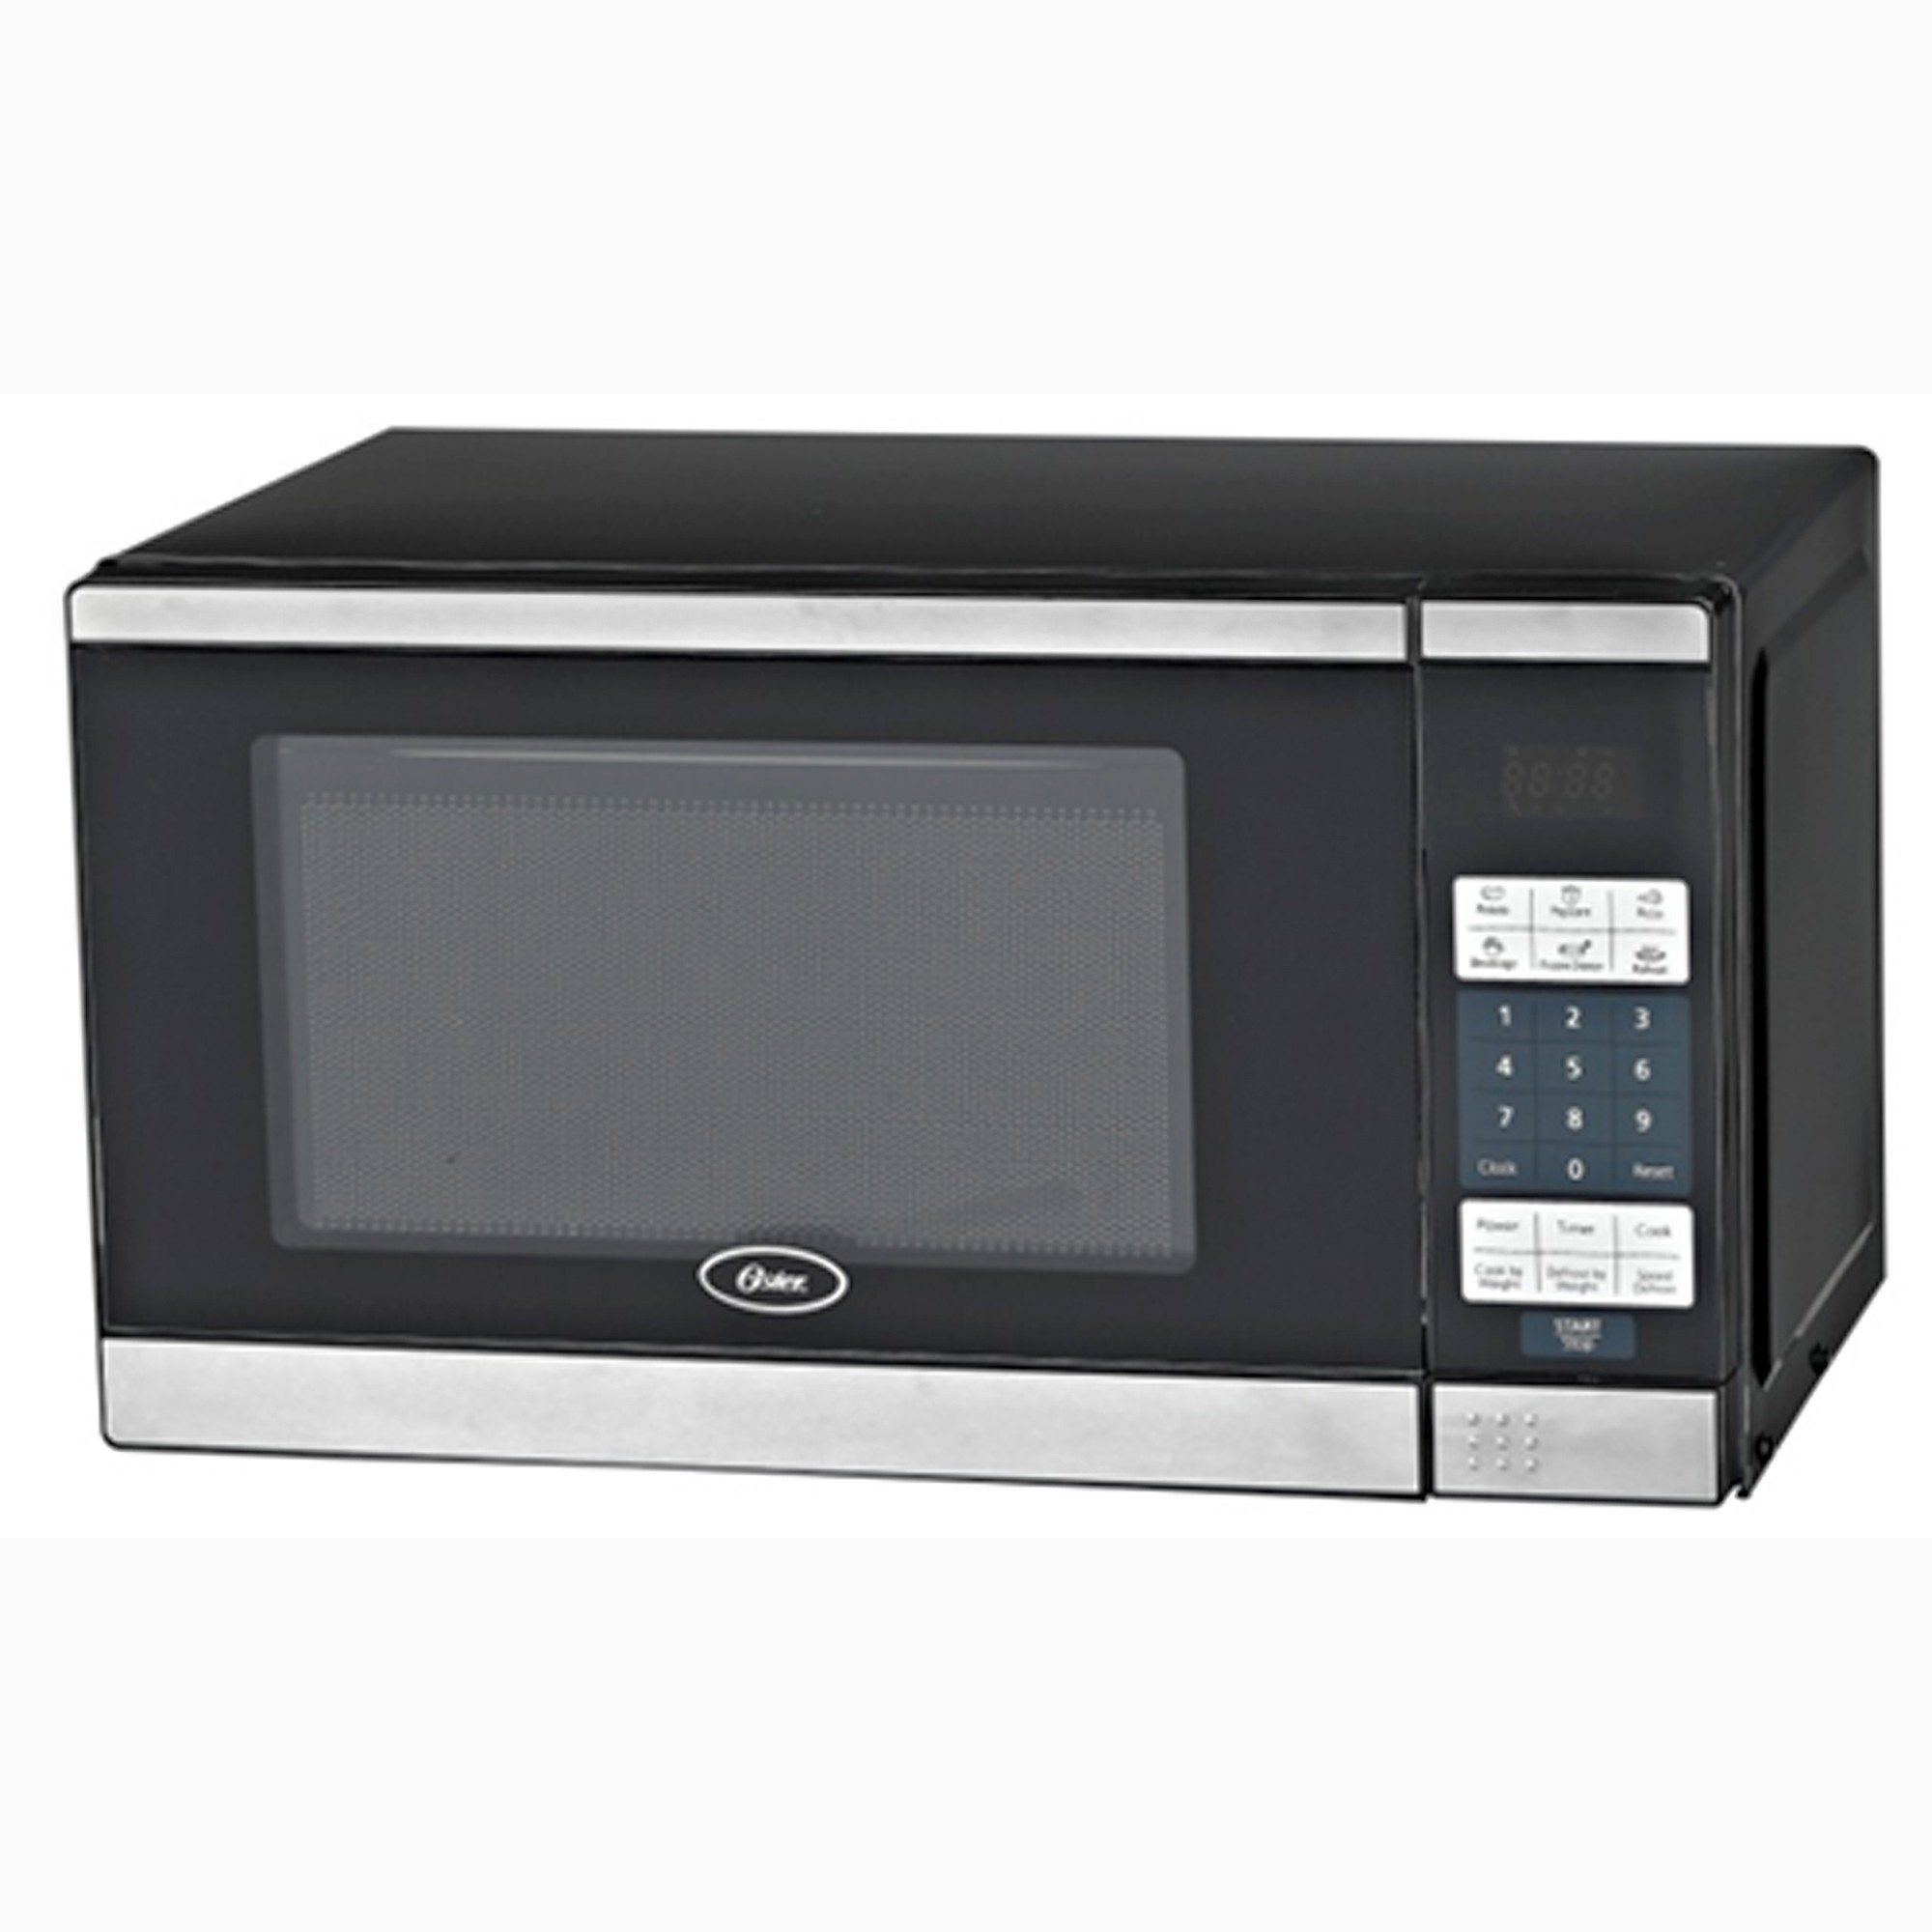 Contoure Microwave Convection Oven Manual